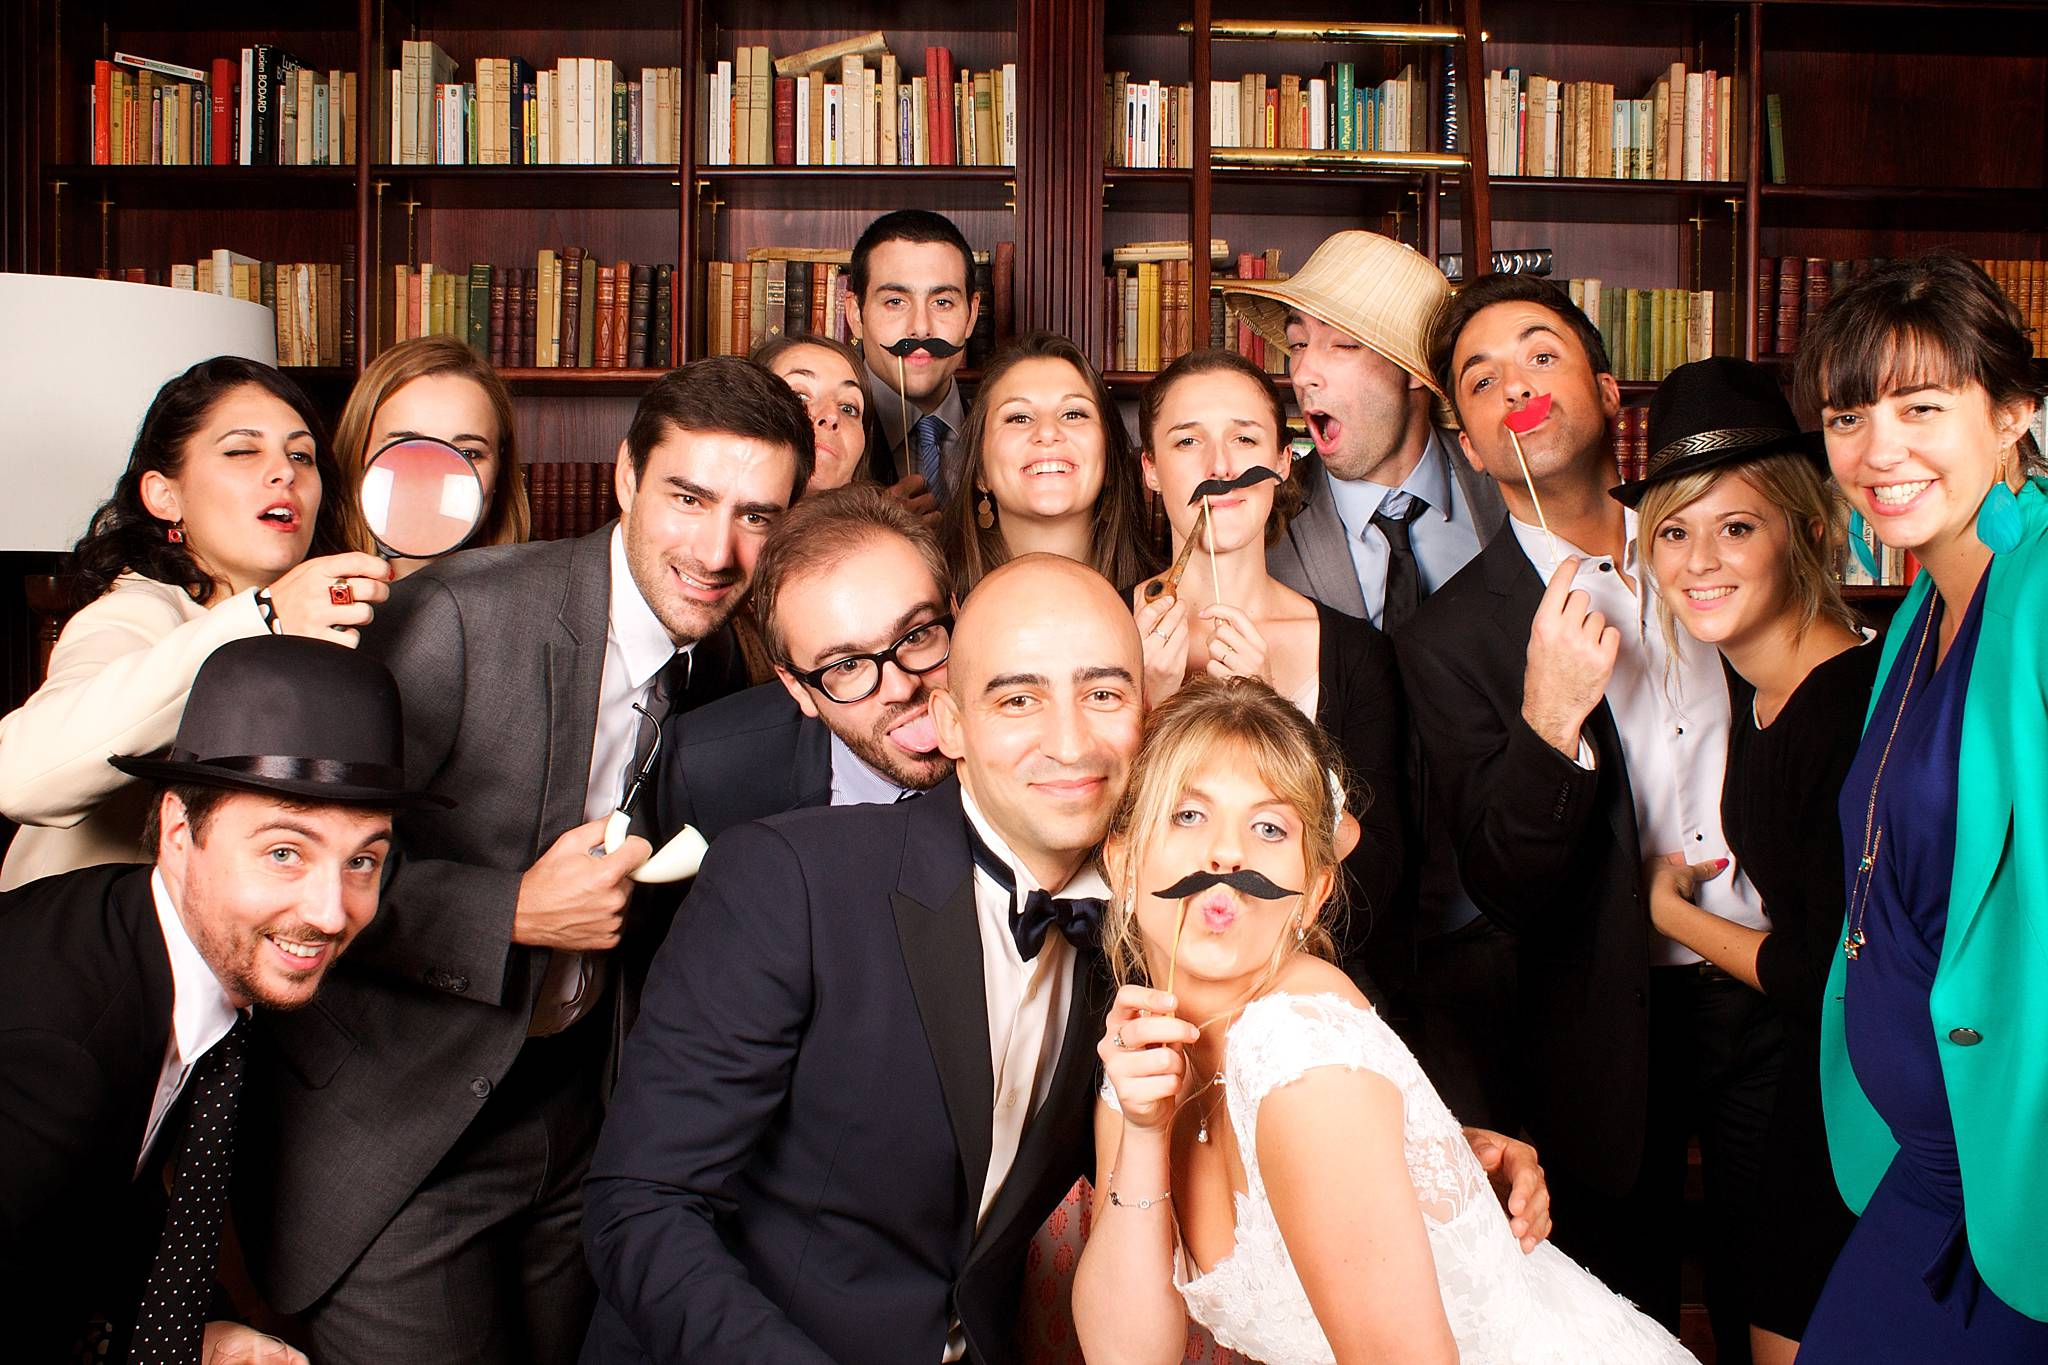 01_photobooth-mariage-bordeaux-gironde-dordogne-charentes-alexandre-roschewitz-photographies_2048px